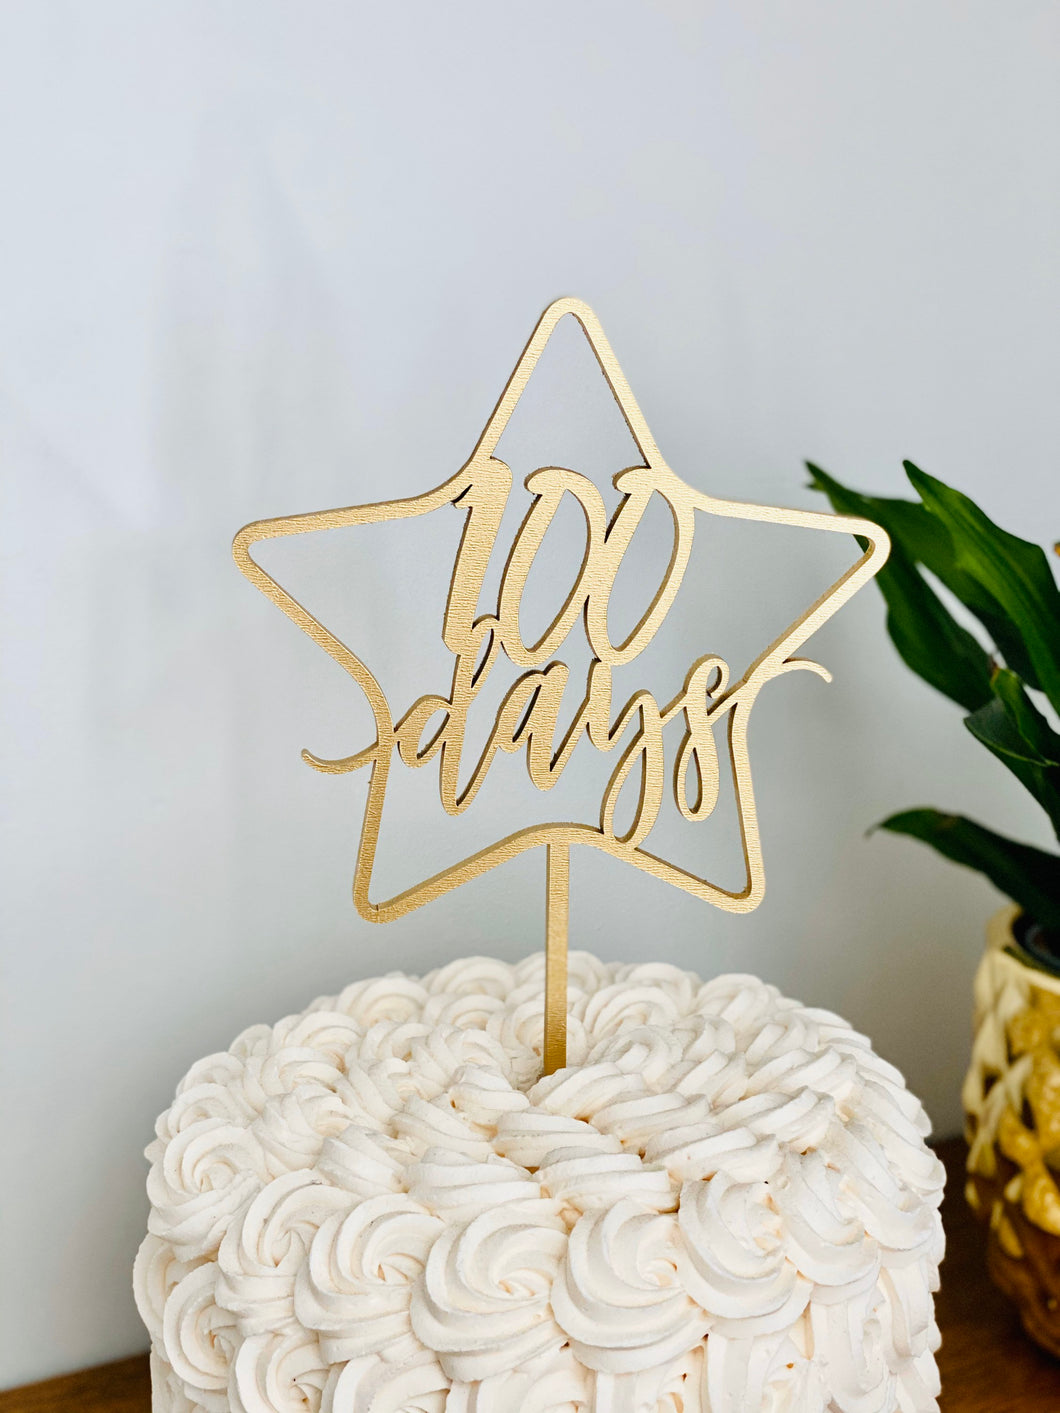 100 Days Star Cake Topper, 5.5